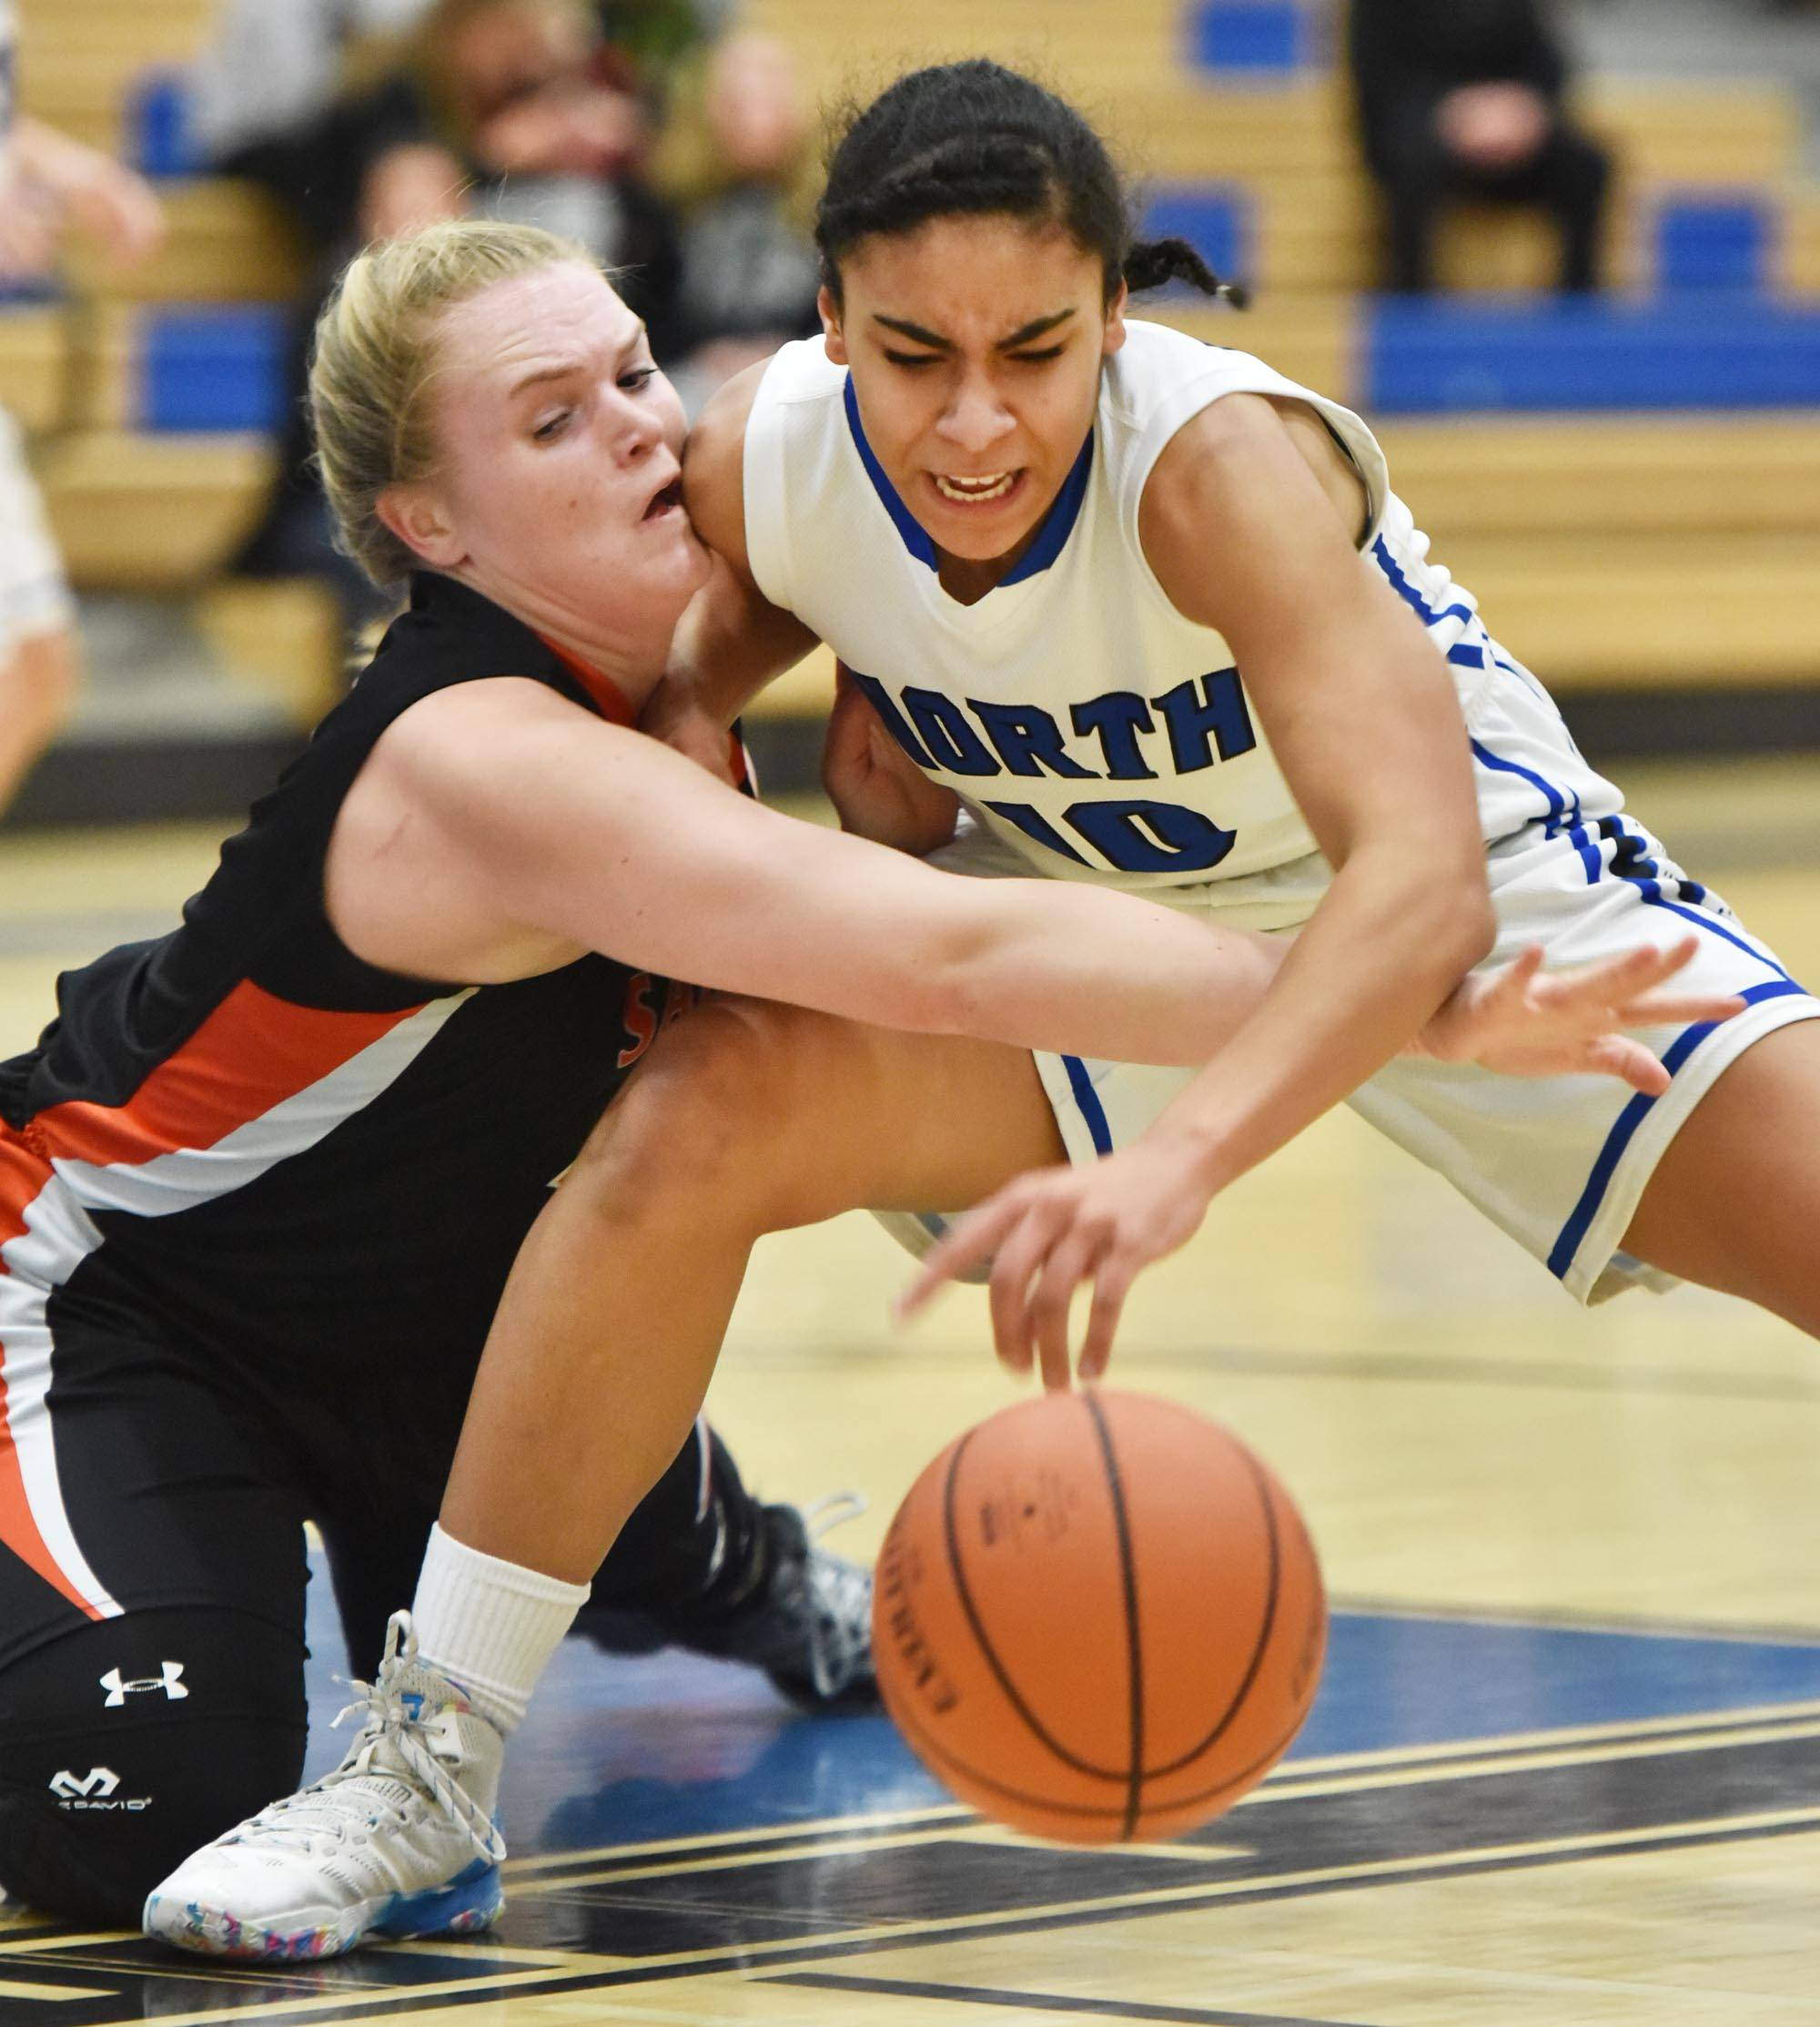 St. Charles North's Jazmyn Harmon fights against St. Charles East's Sara Rosenfeldt for control of the ball Tuesday at North High School in St. Charles.